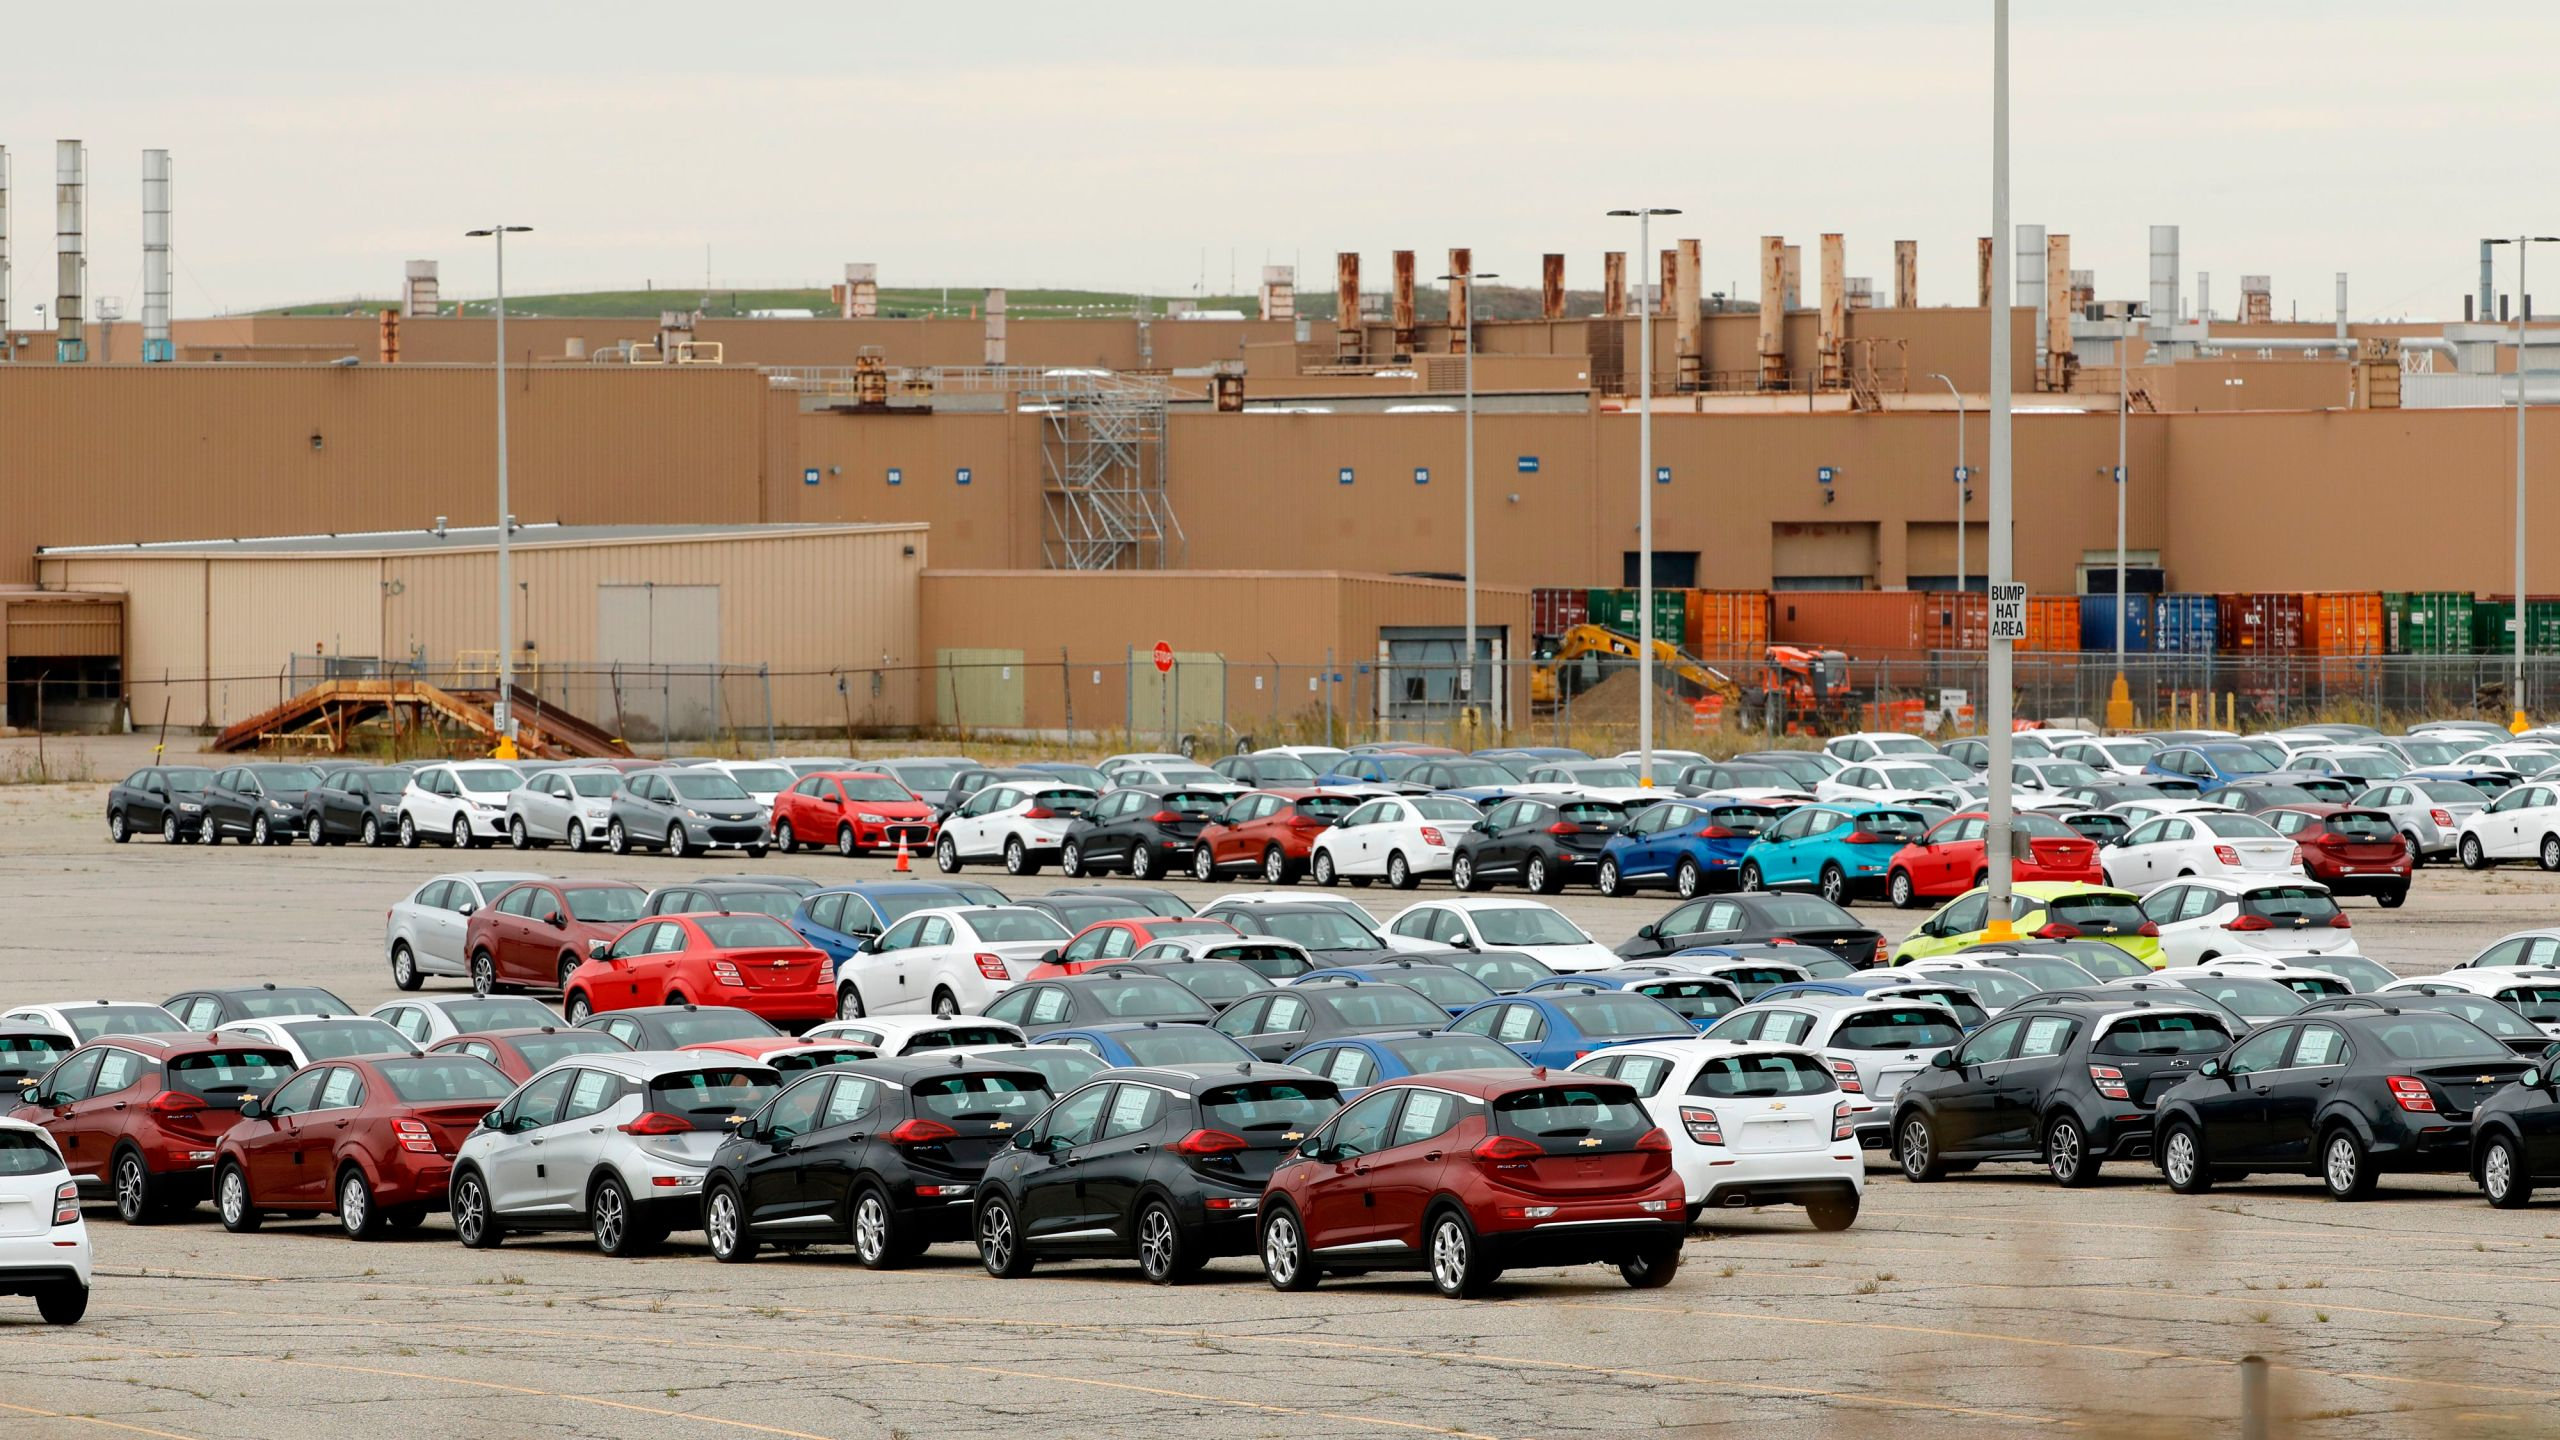 Cheverlot Sonic and Bolt EV vehicles sit in the lot outside General Motors (GM) Orion Assembly on October 11, 2019 in Orion Township, Michigan. (JEFF KOWALSKY/AFP via Getty Images)